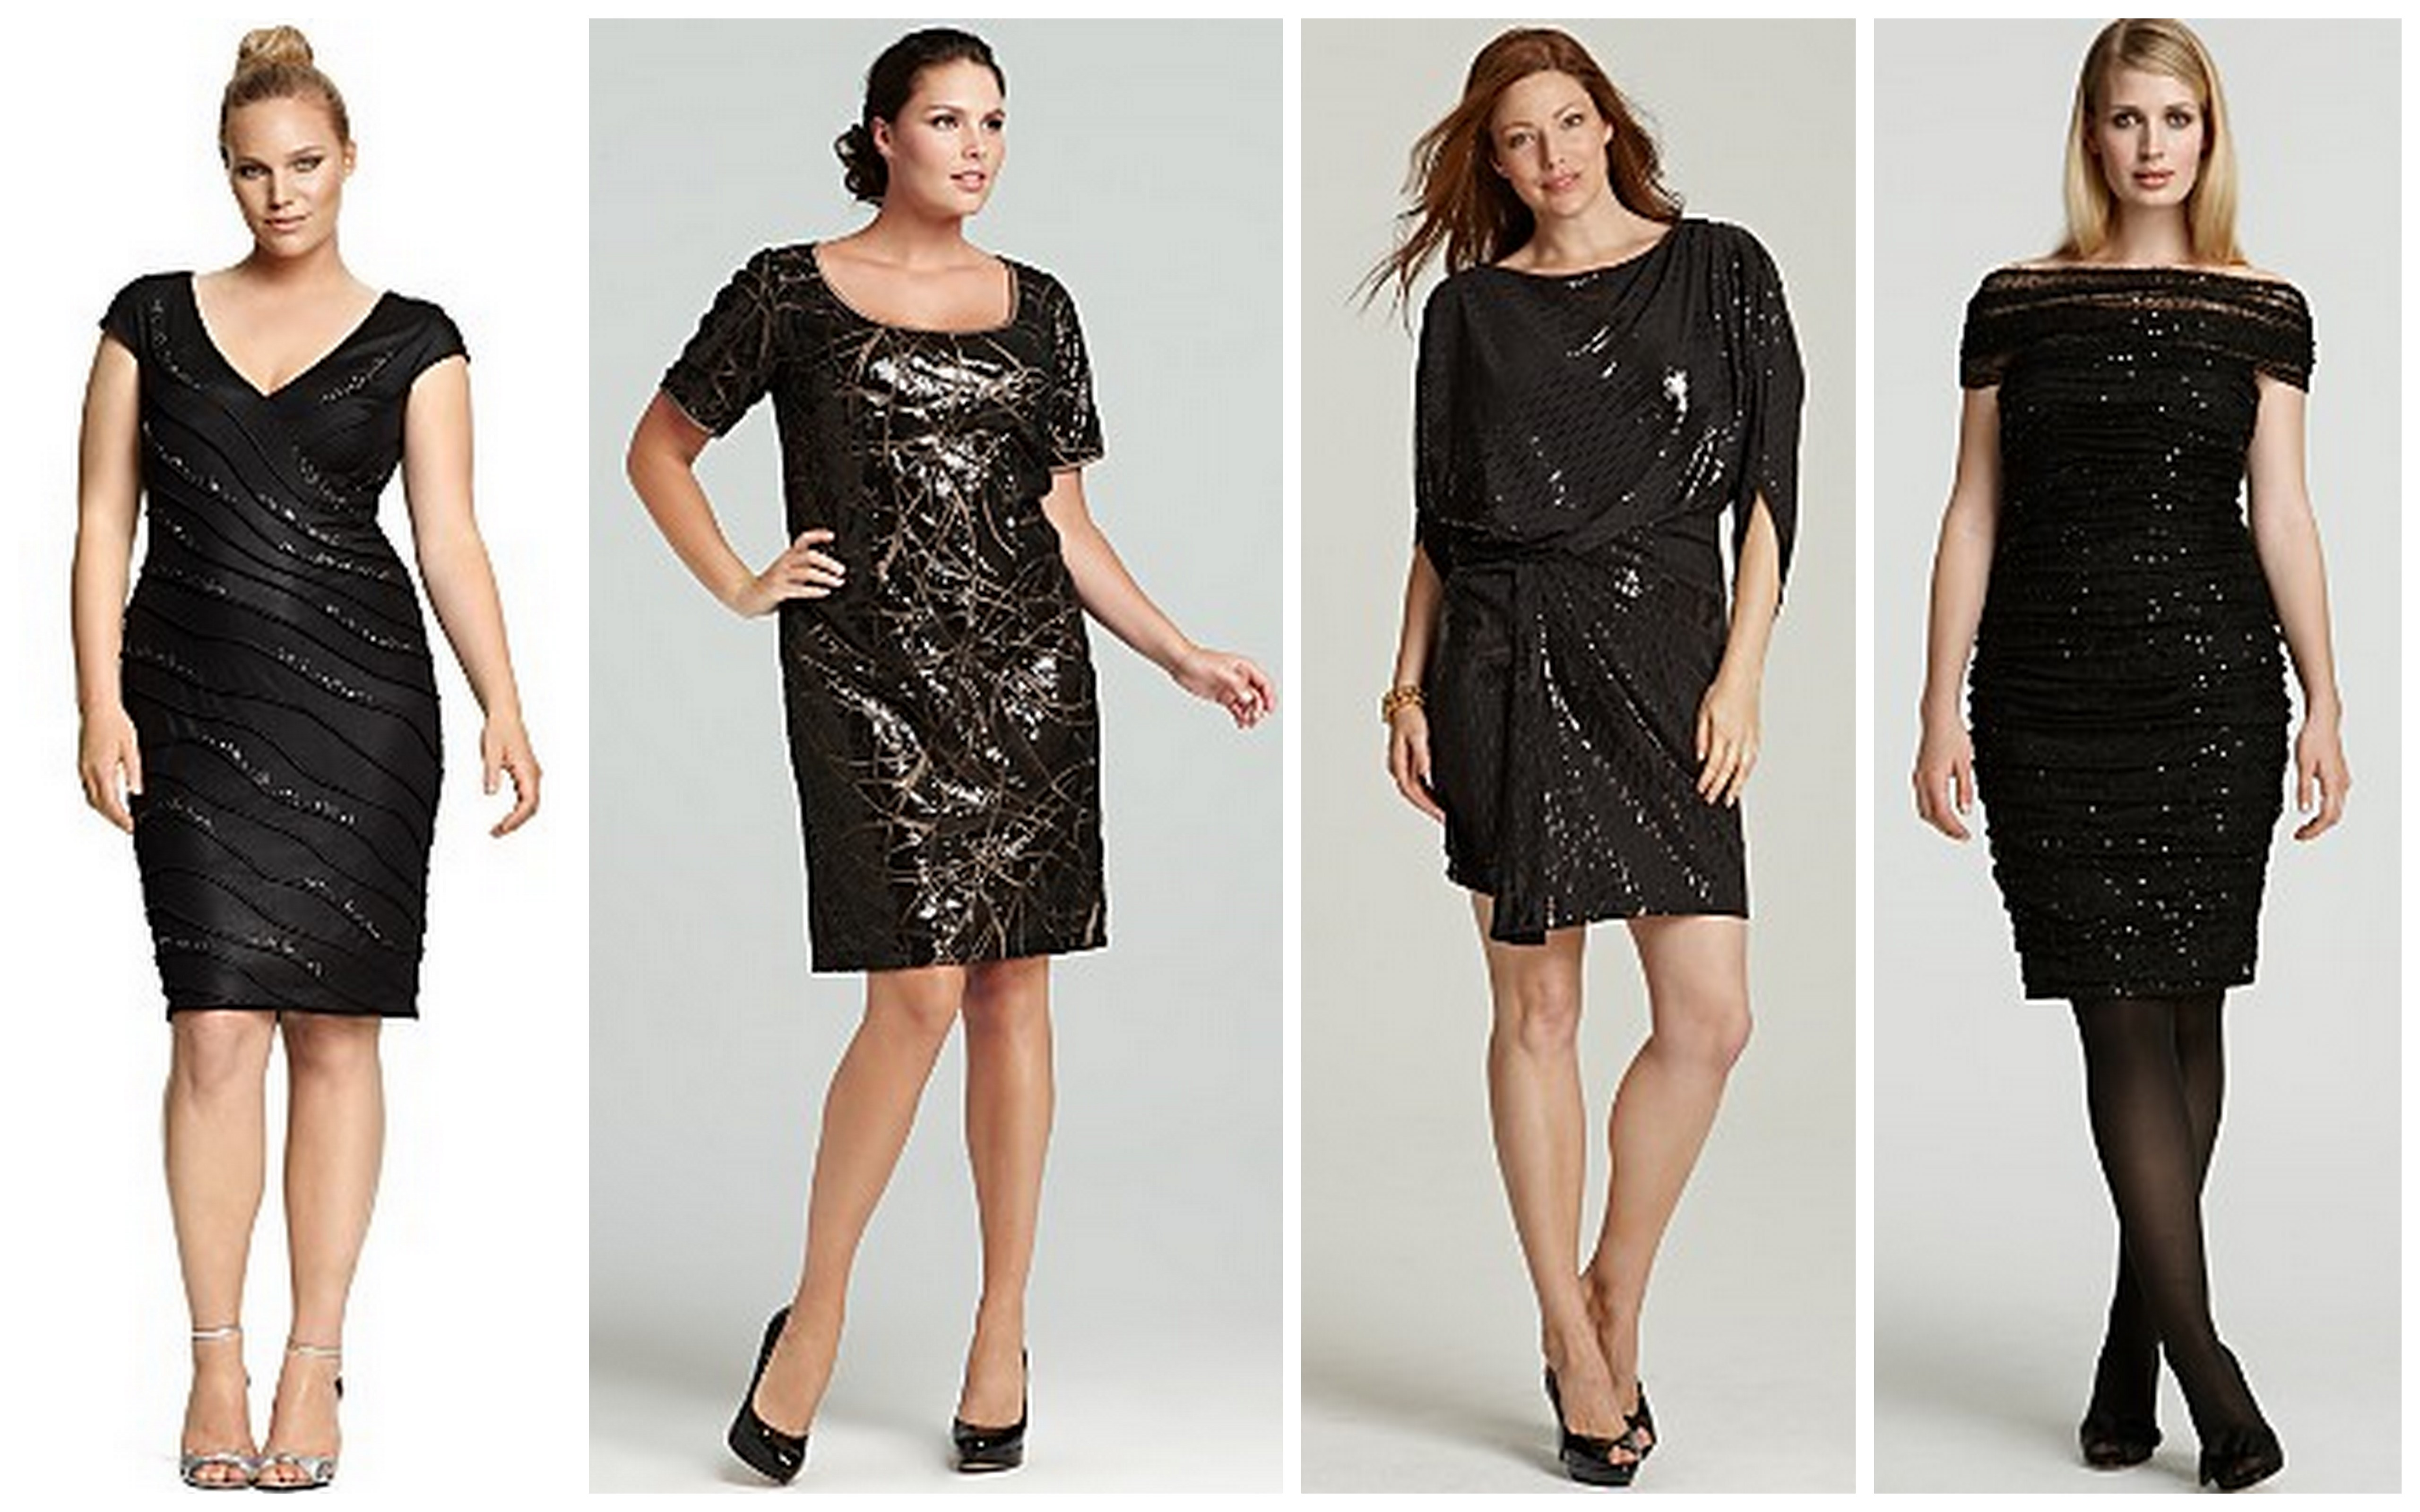 Plus Size Black Dresses For Funeral Shopping Guide We